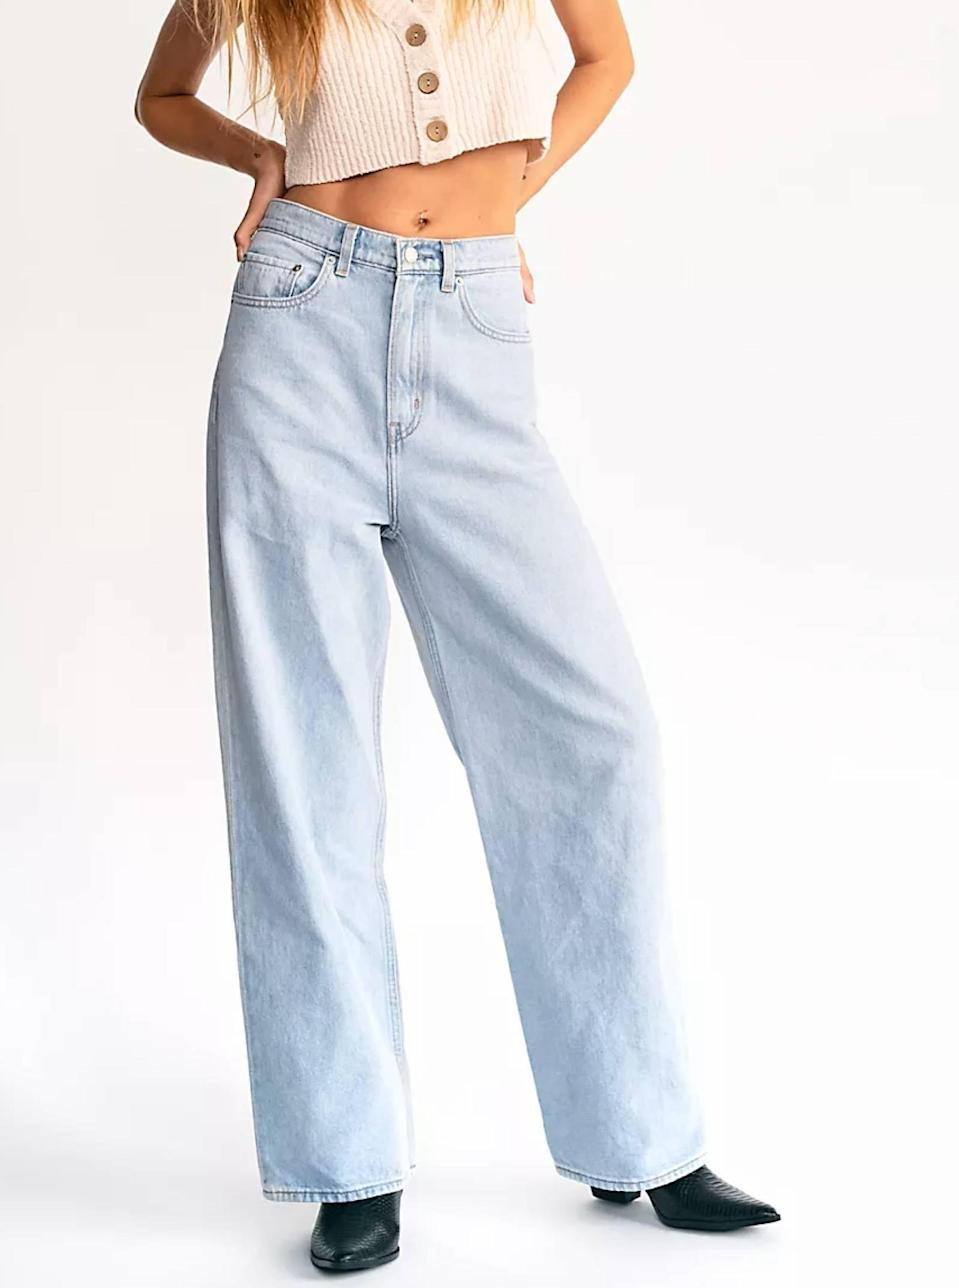 """$98, Free People. <a href=""""https://www.freepeople.com/shop/high-loose-jeans/?"""" rel=""""nofollow noopener"""" target=""""_blank"""" data-ylk=""""slk:Get it now!"""" class=""""link rapid-noclick-resp"""">Get it now!</a>"""